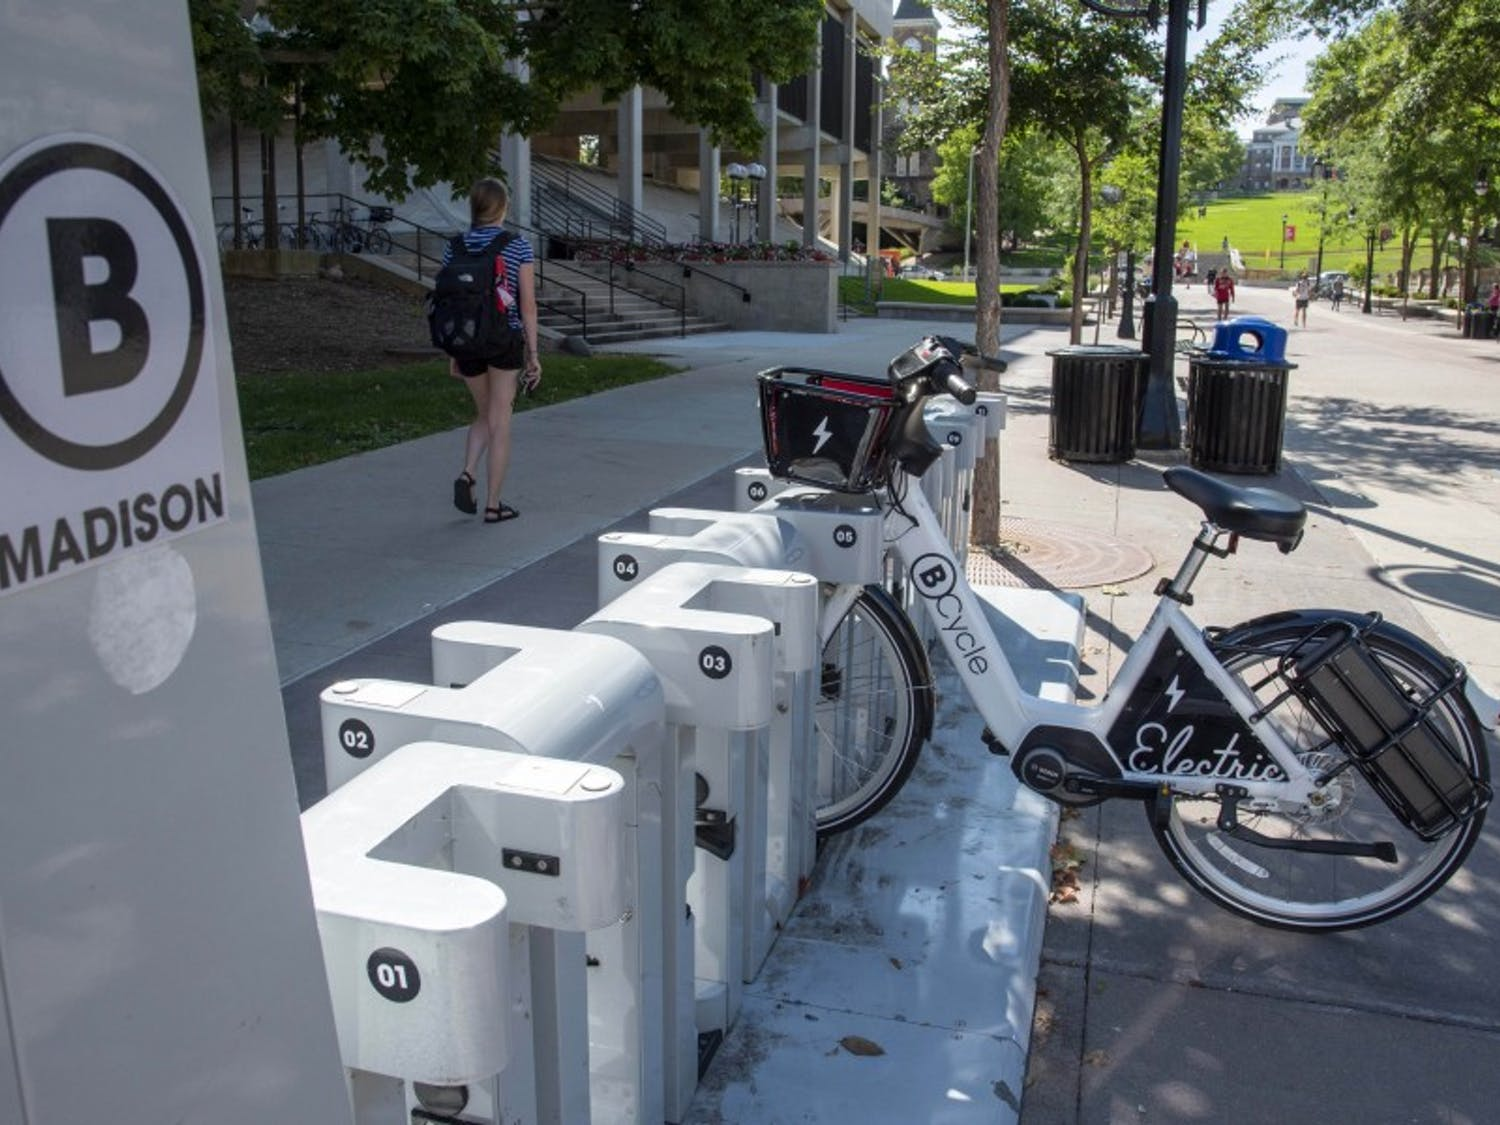 UW-Madison, UW-Milwaukee and UW-Stevens Point are considered bicycle-friendly campuses, based on new ratings from the League of American Bicyclists.